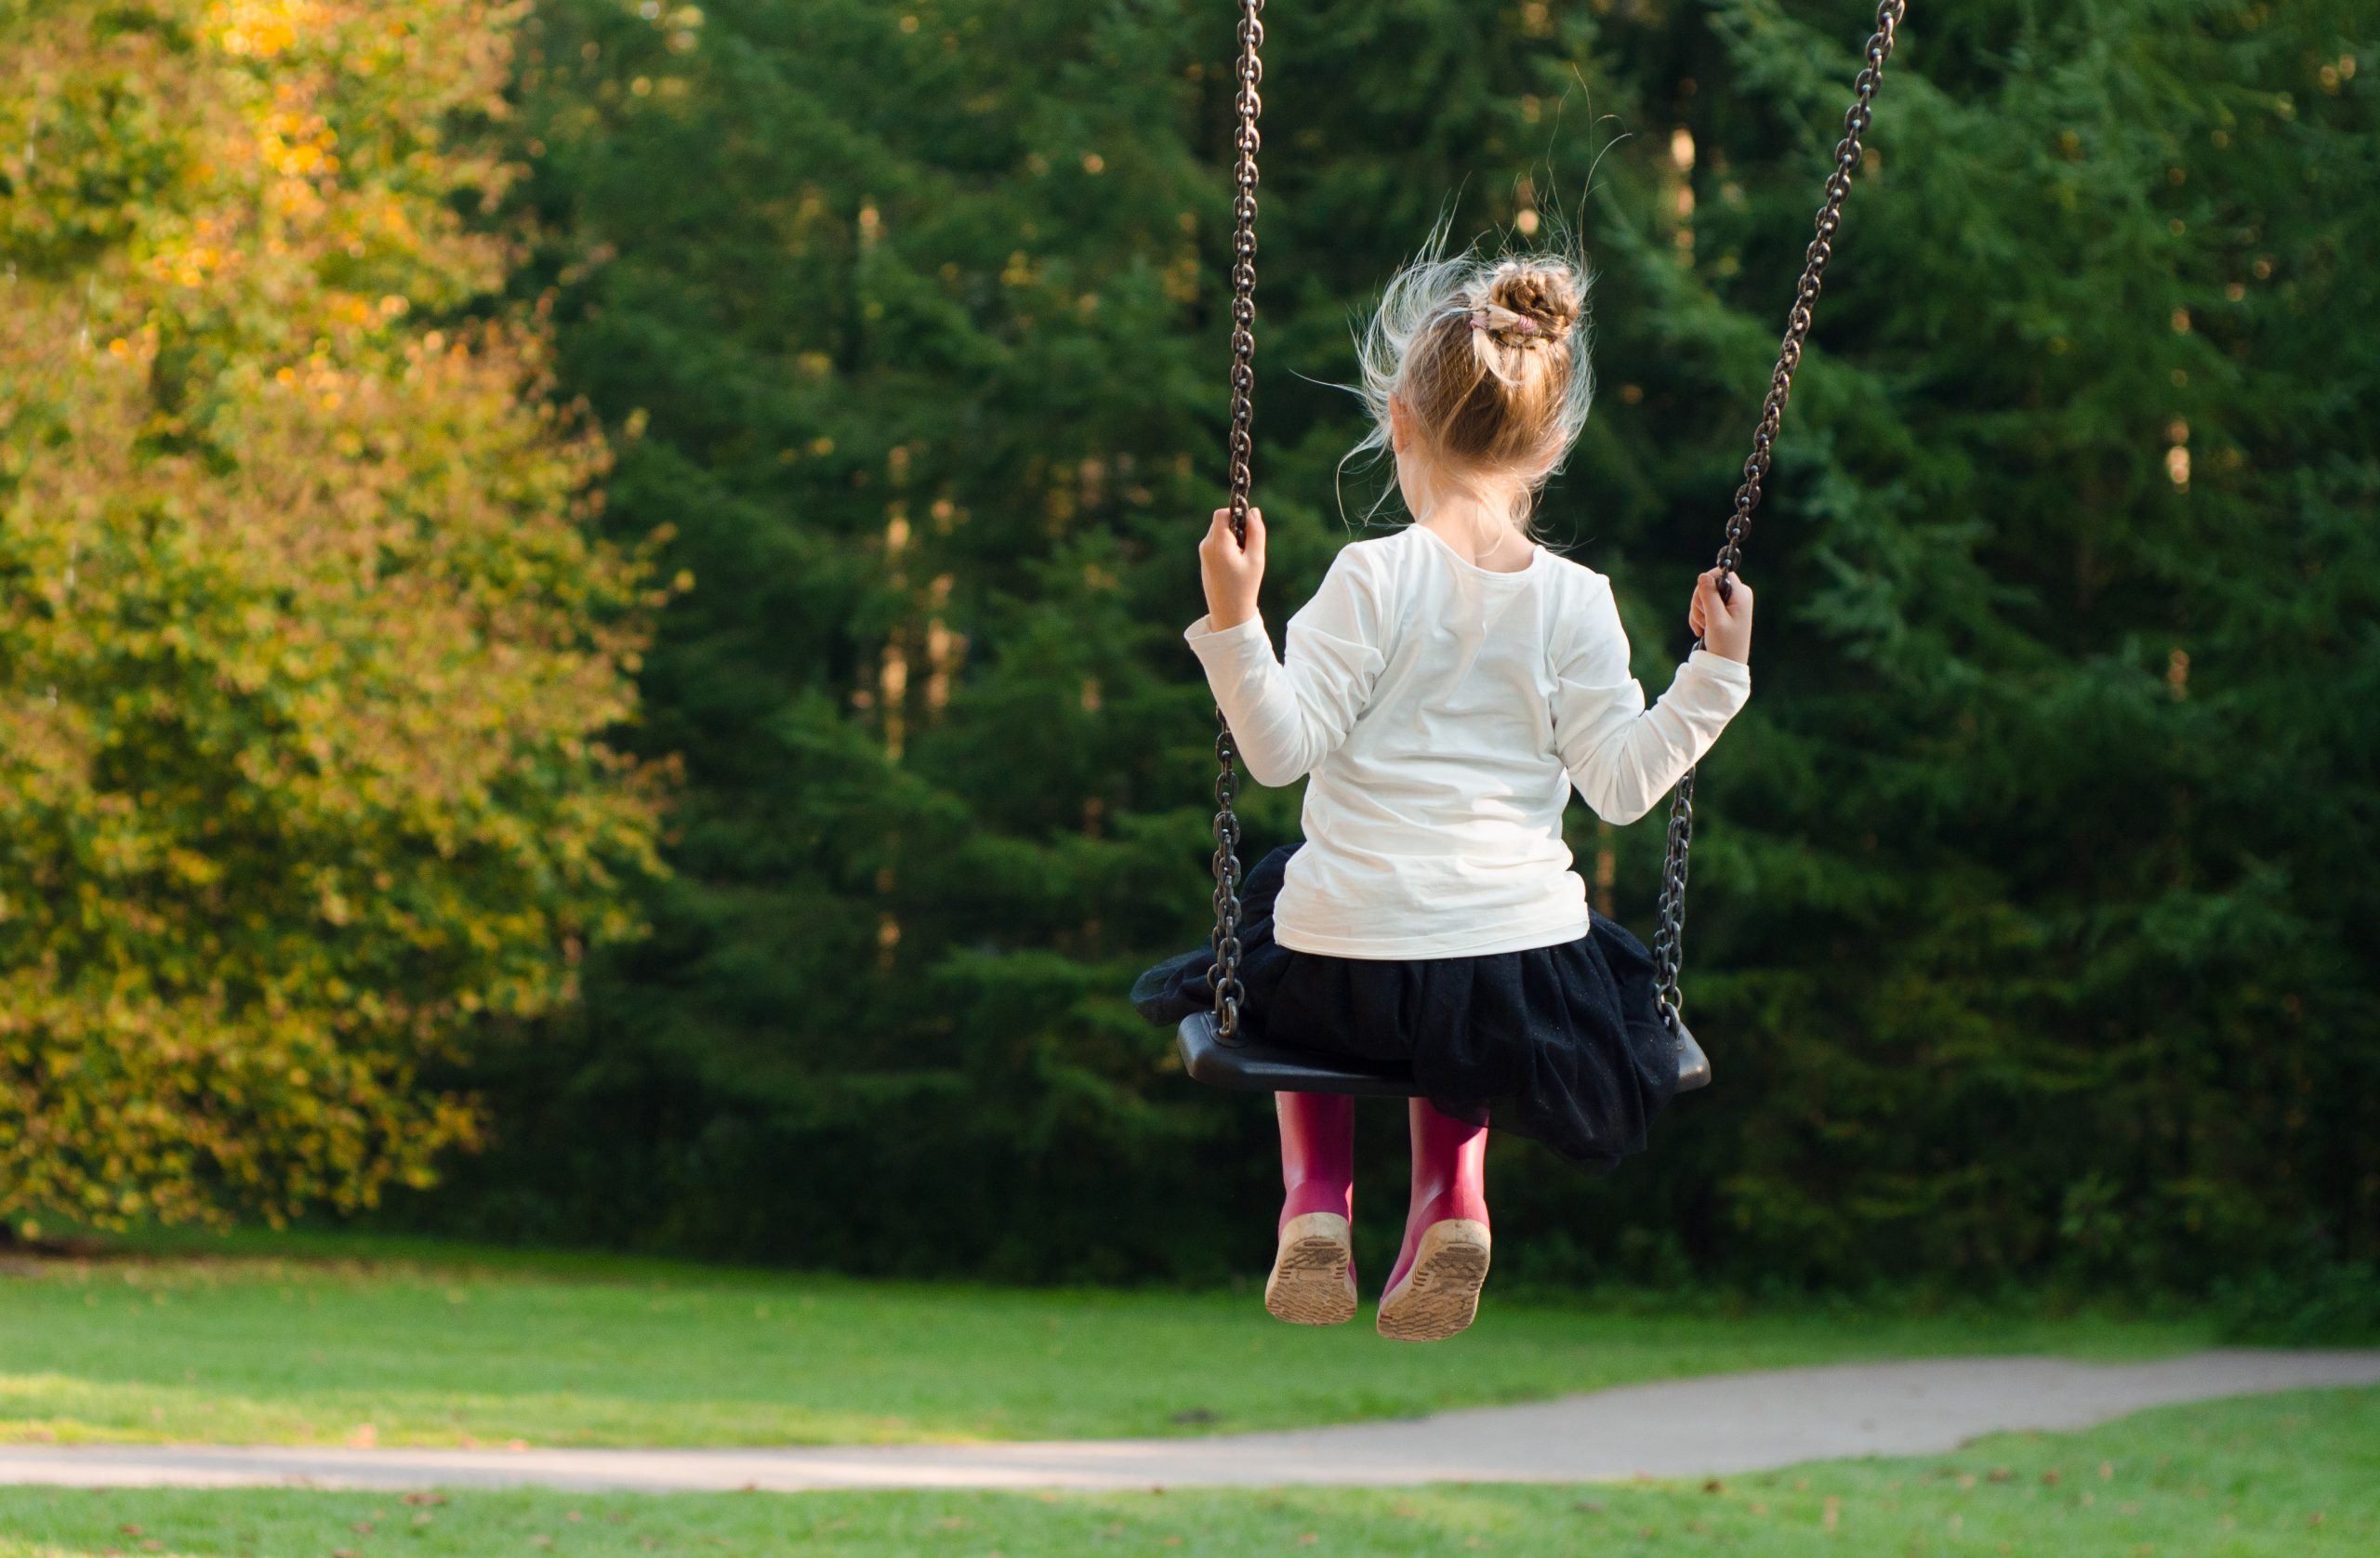 young girl on outdoor swing with green trees